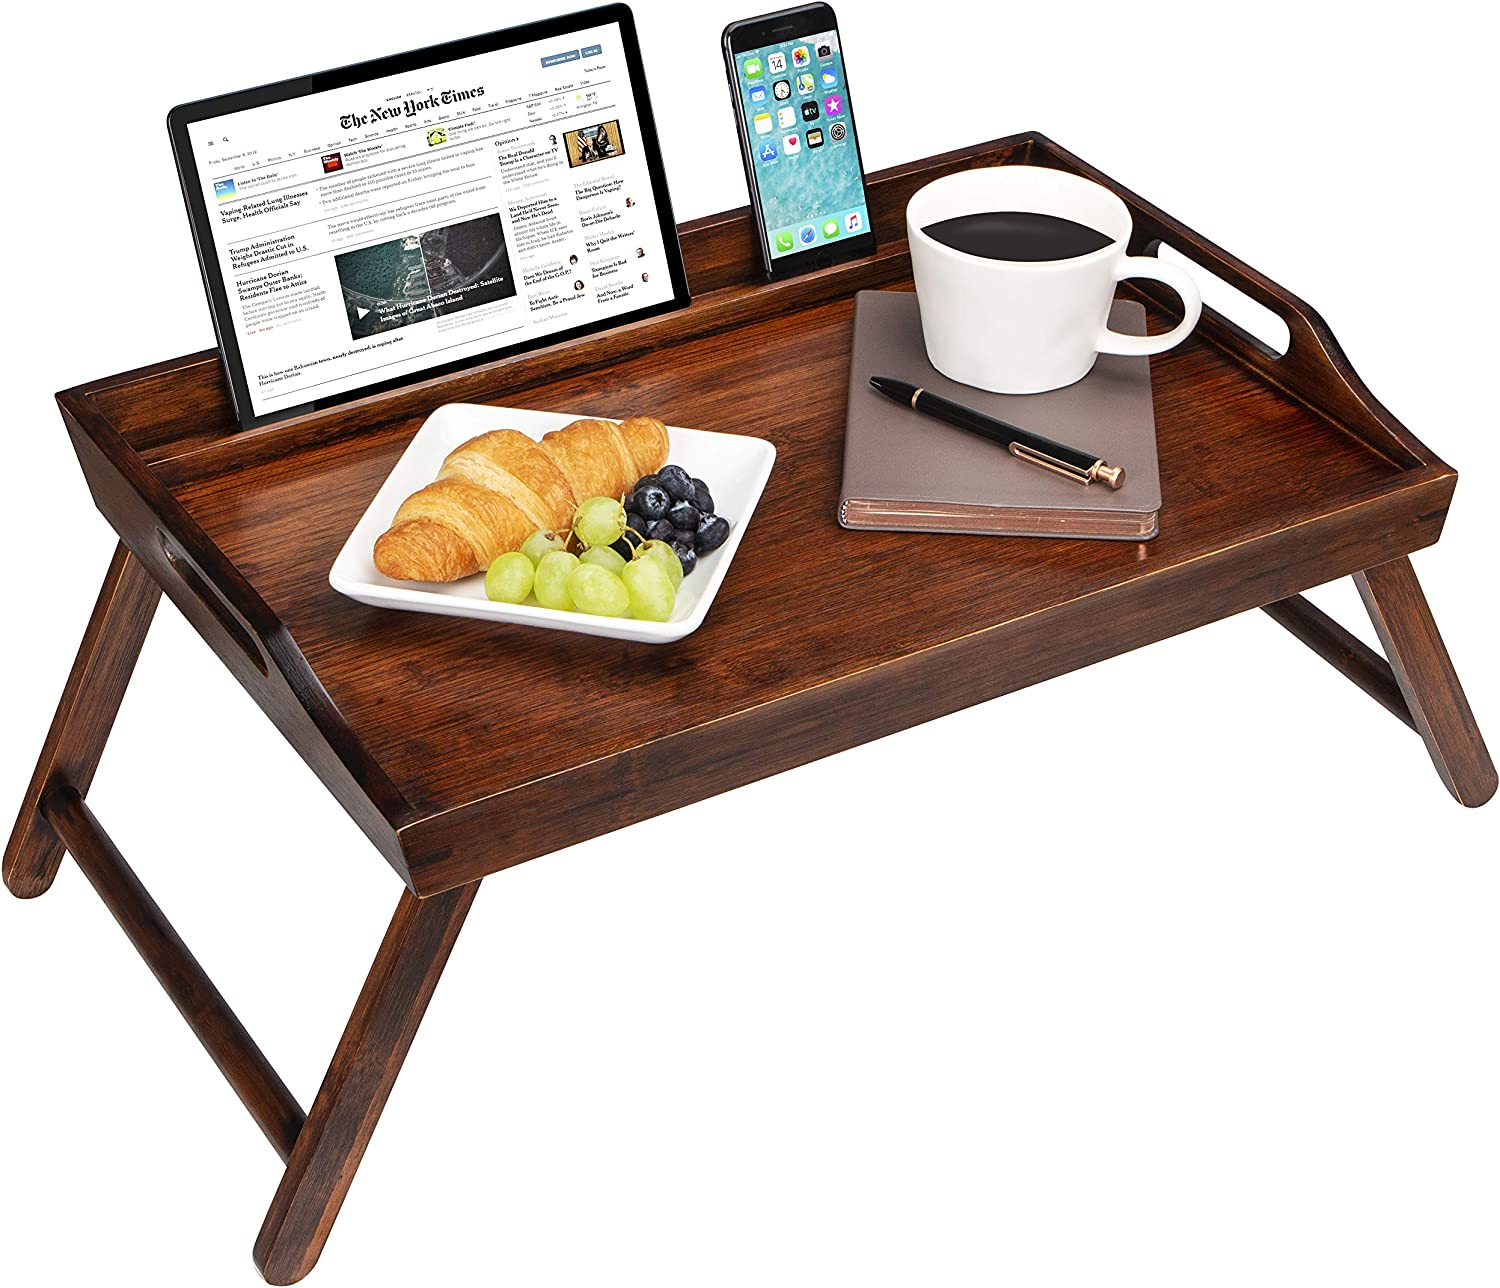 Rossie Home Media Bed Tray Indianapolis Mall with Phone To 17.3 Holder Up I Product - Fits